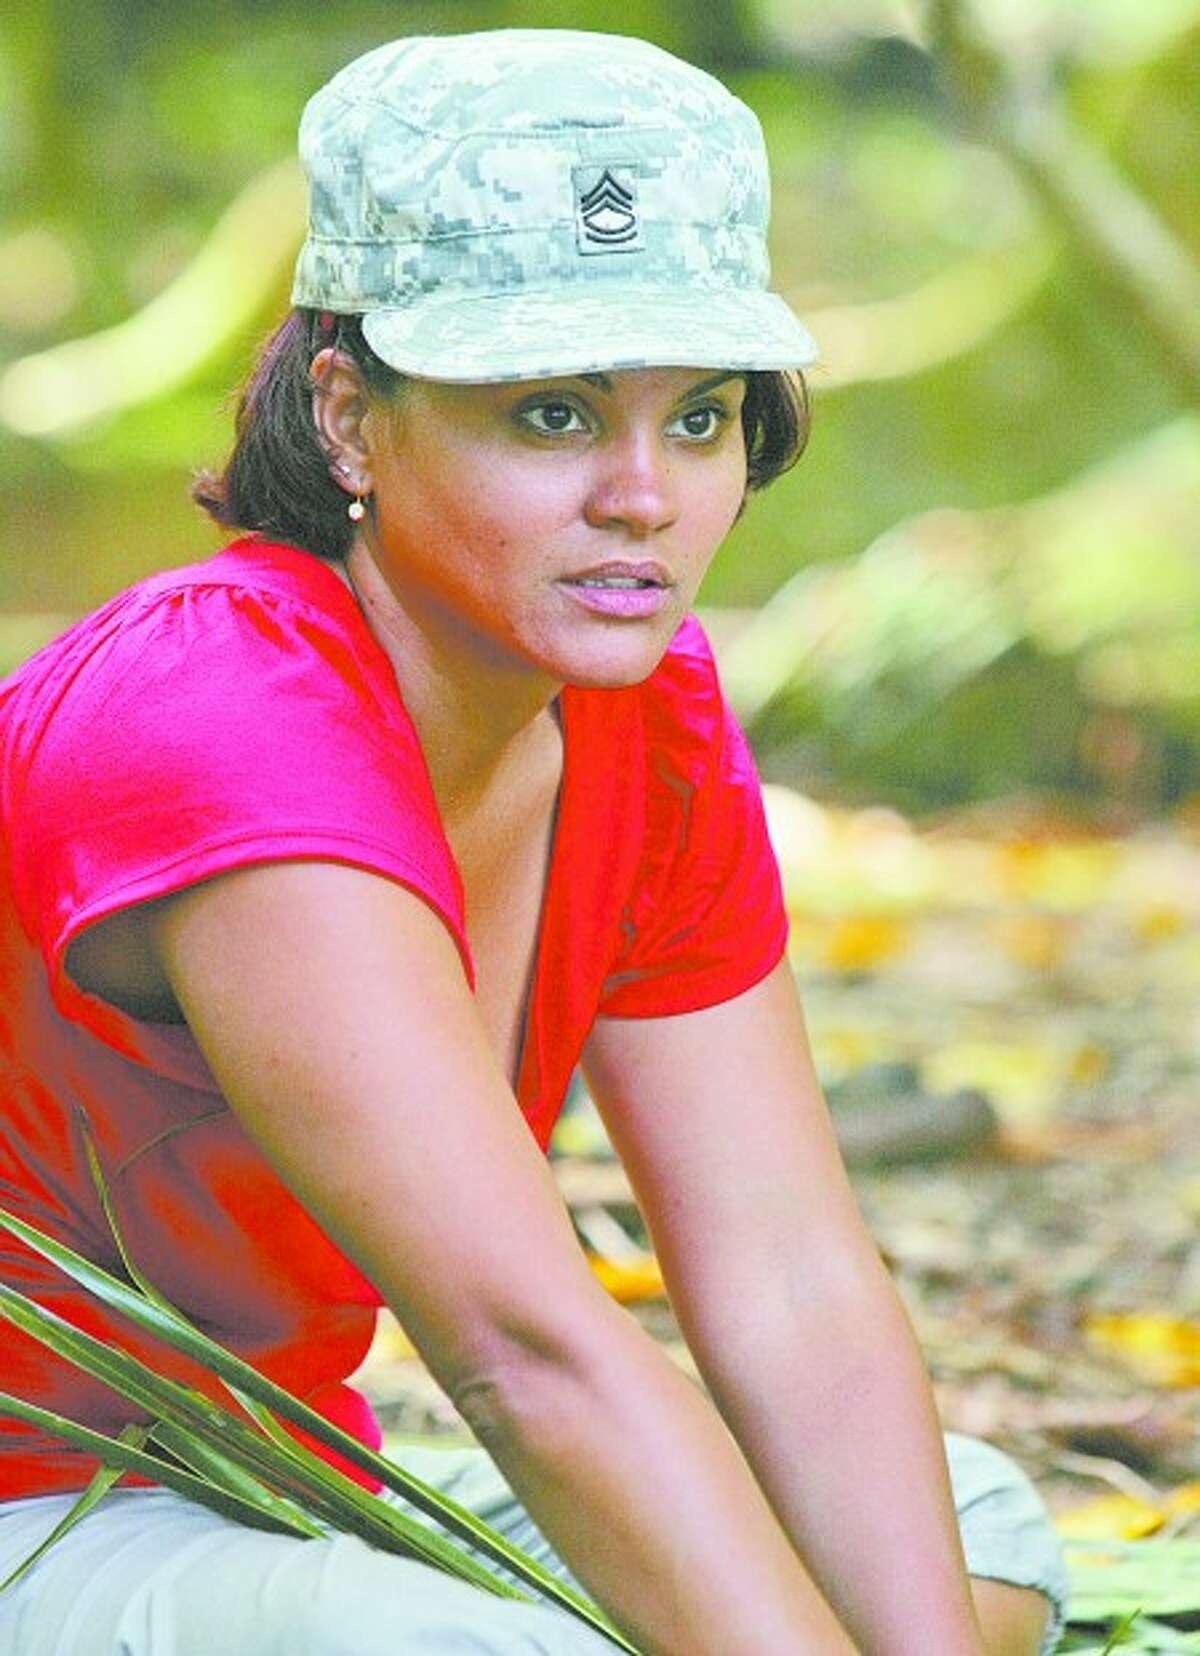 Former castaway Sandra Diaz returns to compete on SURVIVOR: HEROES VS. VILLAINS, when the 20th installment of the Emmy Award-winning series premieres with a special two-hour episode, Thursday, Feb. 11 (8:00-10:00 PM, ET/PT) on the CBS Television Network. Photo: Robert Voets(c)2009 CBS Broadcasting Inc. All Rights Reserved